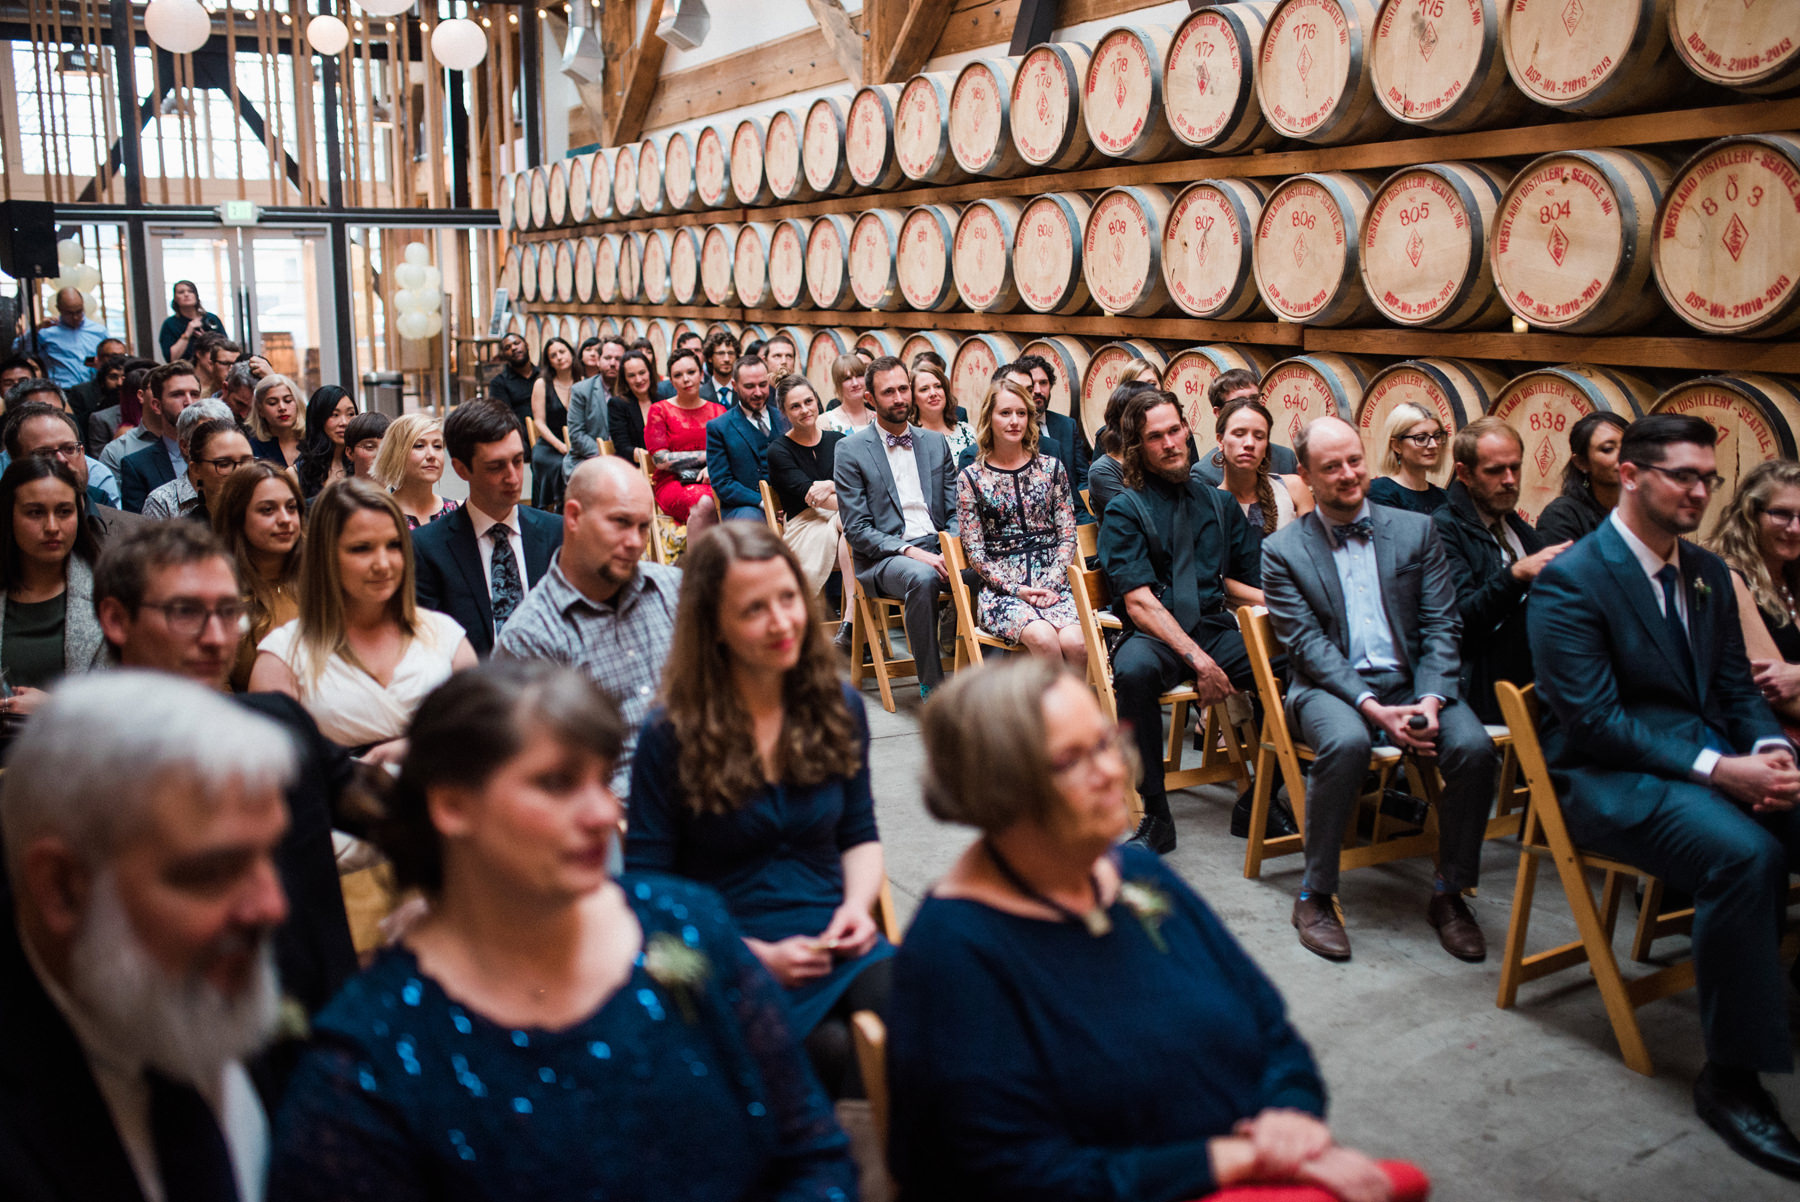 041-wedding-ceremony-among-whiskey-barrels-at-westland-distillery-in-seattle.jpg